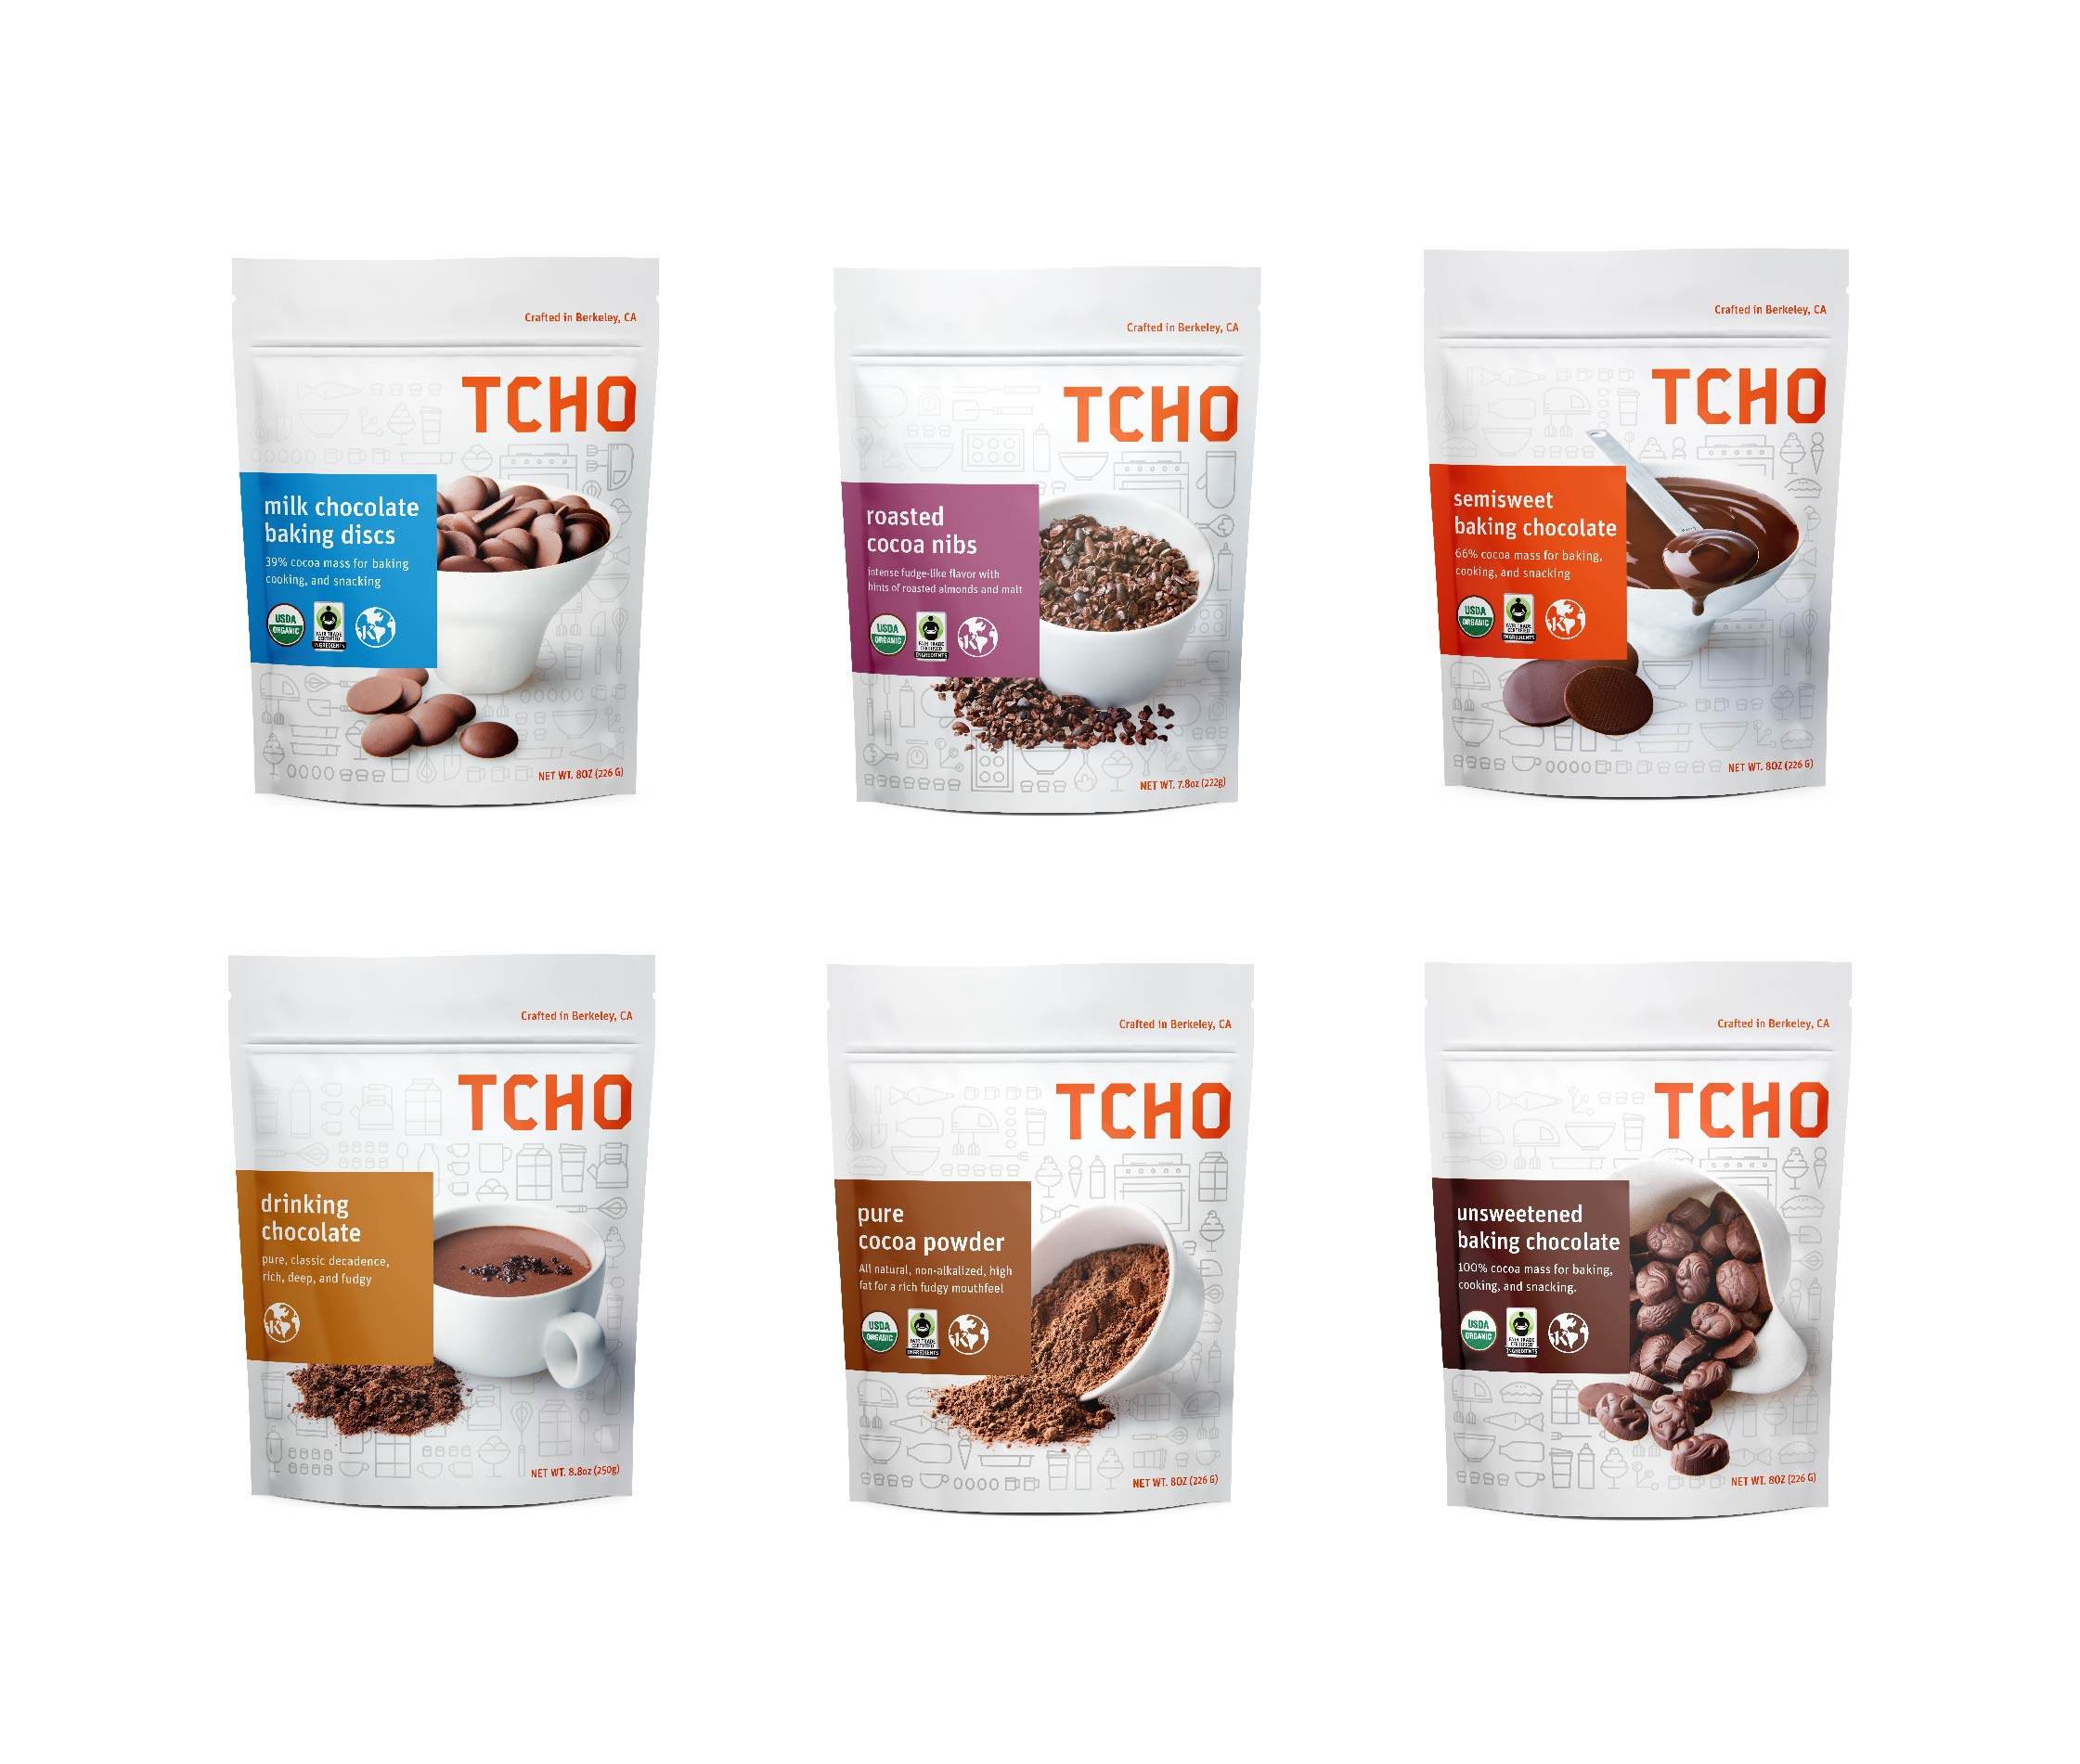 Packaging design line up for Tcho chocolate